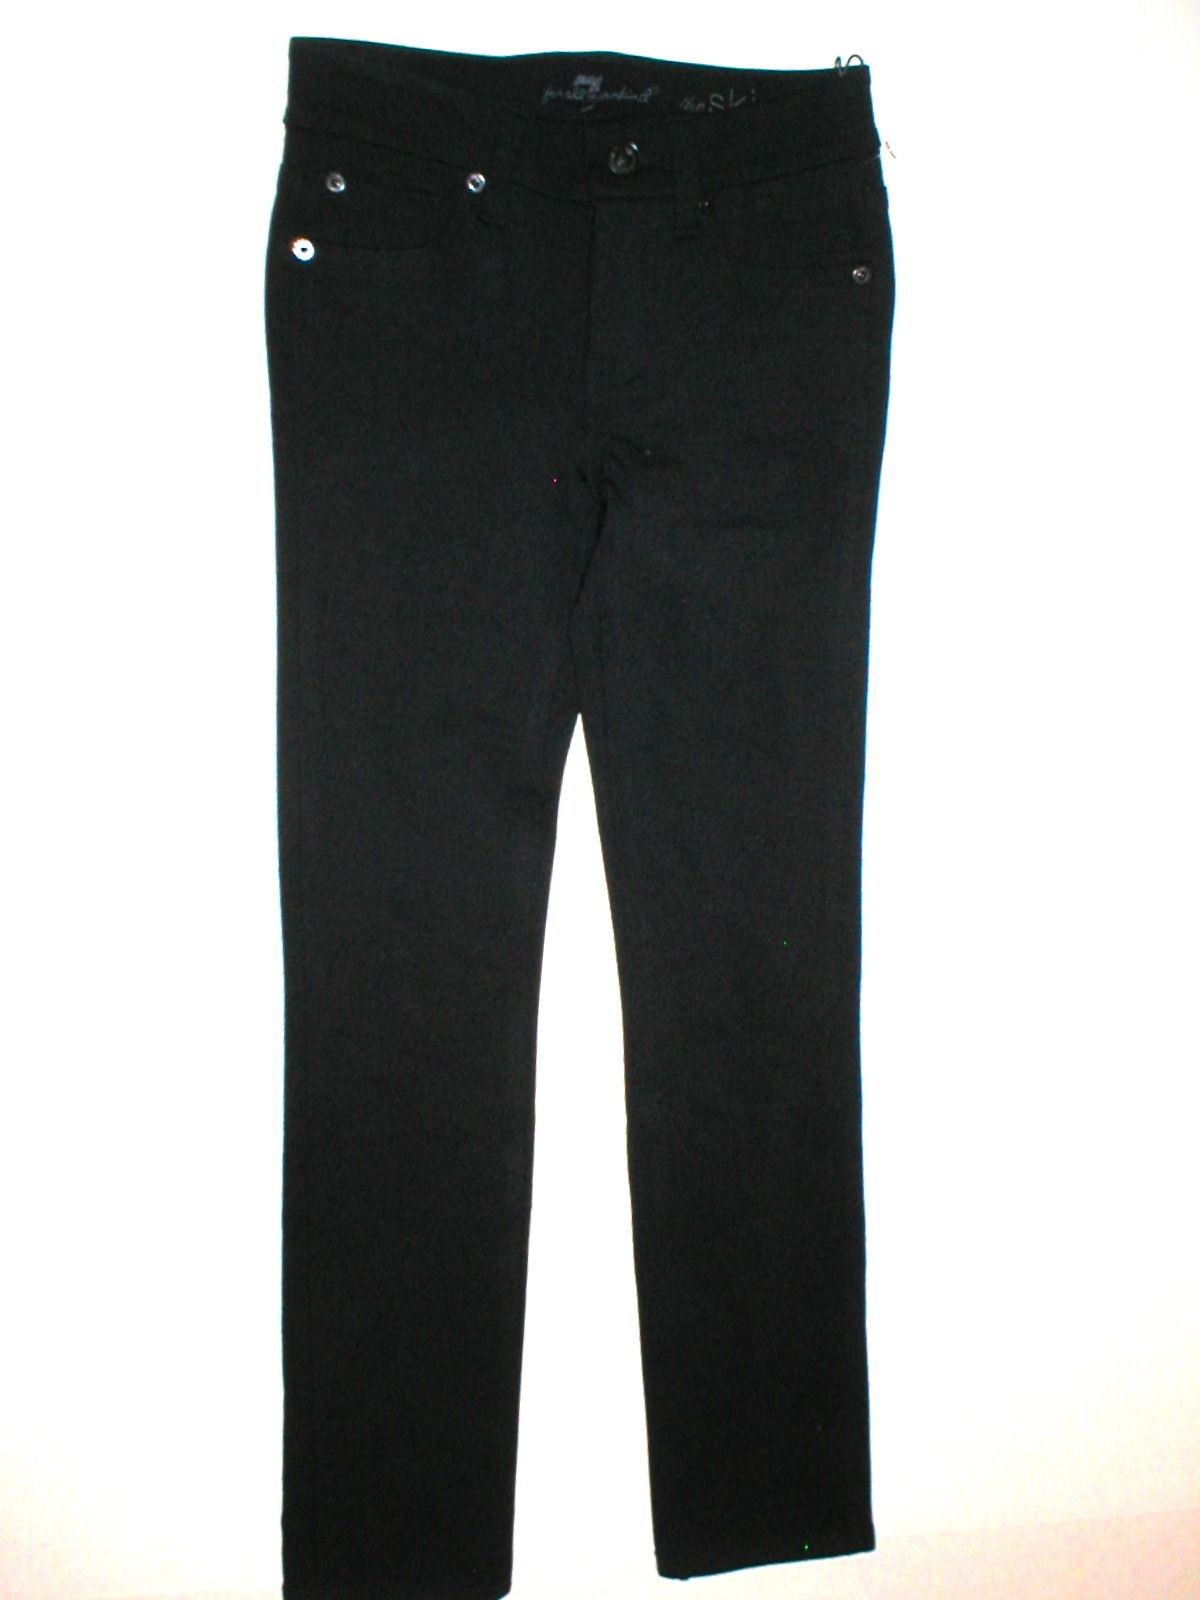 New Girls Jeans The Skinny 7 for all mankind 12 NWT Leggings Black Pants Rayon image 2